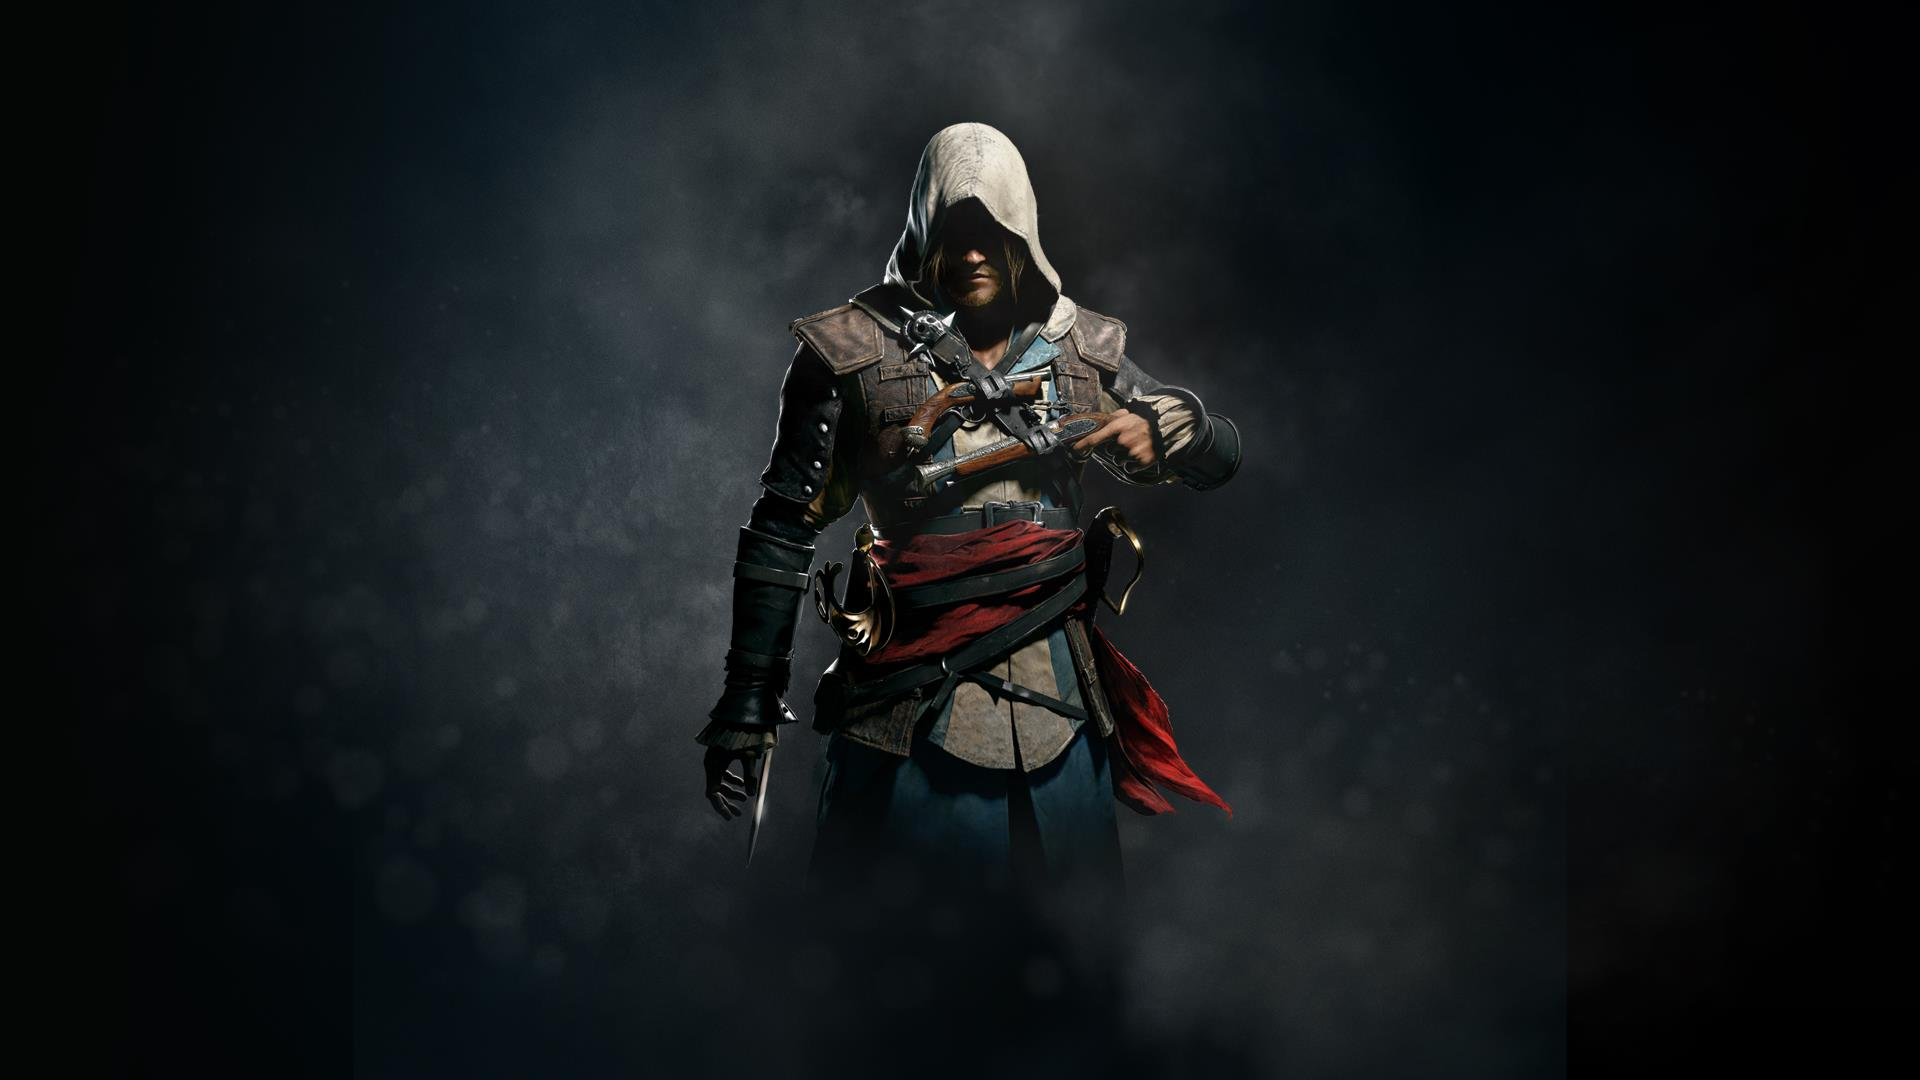 Heroes Aren't Born in Assassin's Creed IV: Black Flag